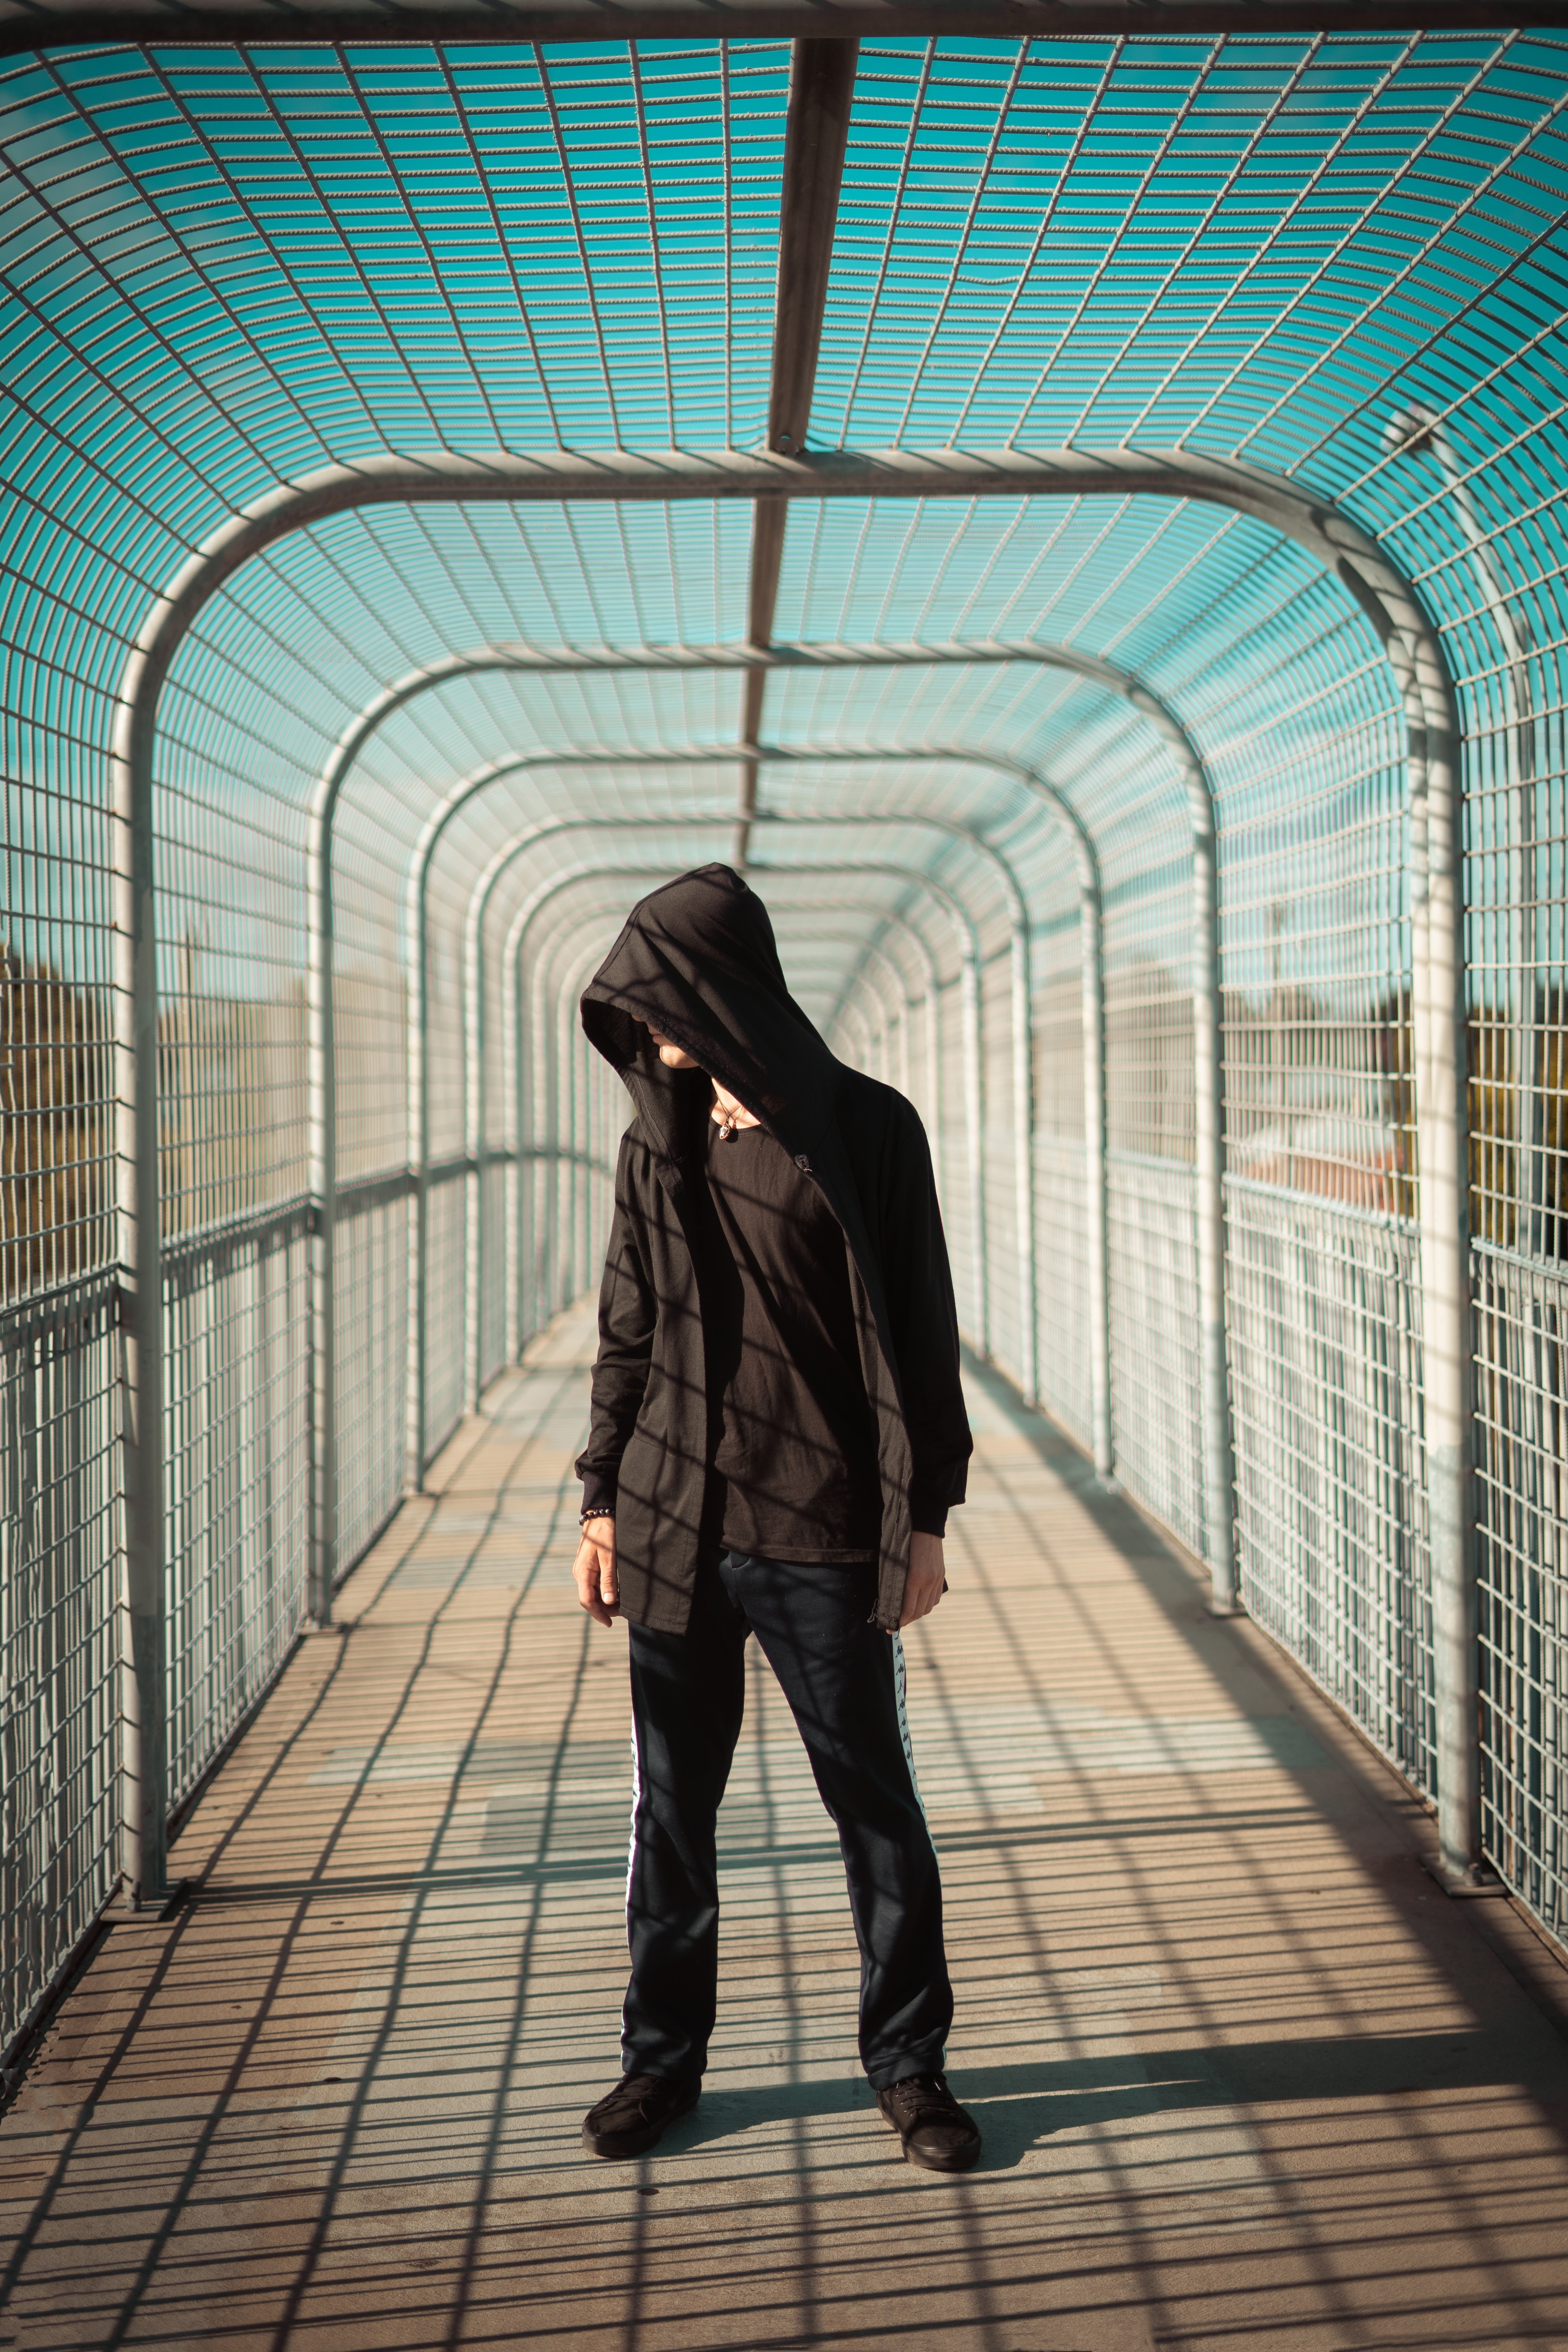 129514 free wallpaper 1125x2436 for phone, download images Miscellanea, Miscellaneous, Bridge, Human, Person, Tunnel, Hood 1125x2436 for mobile